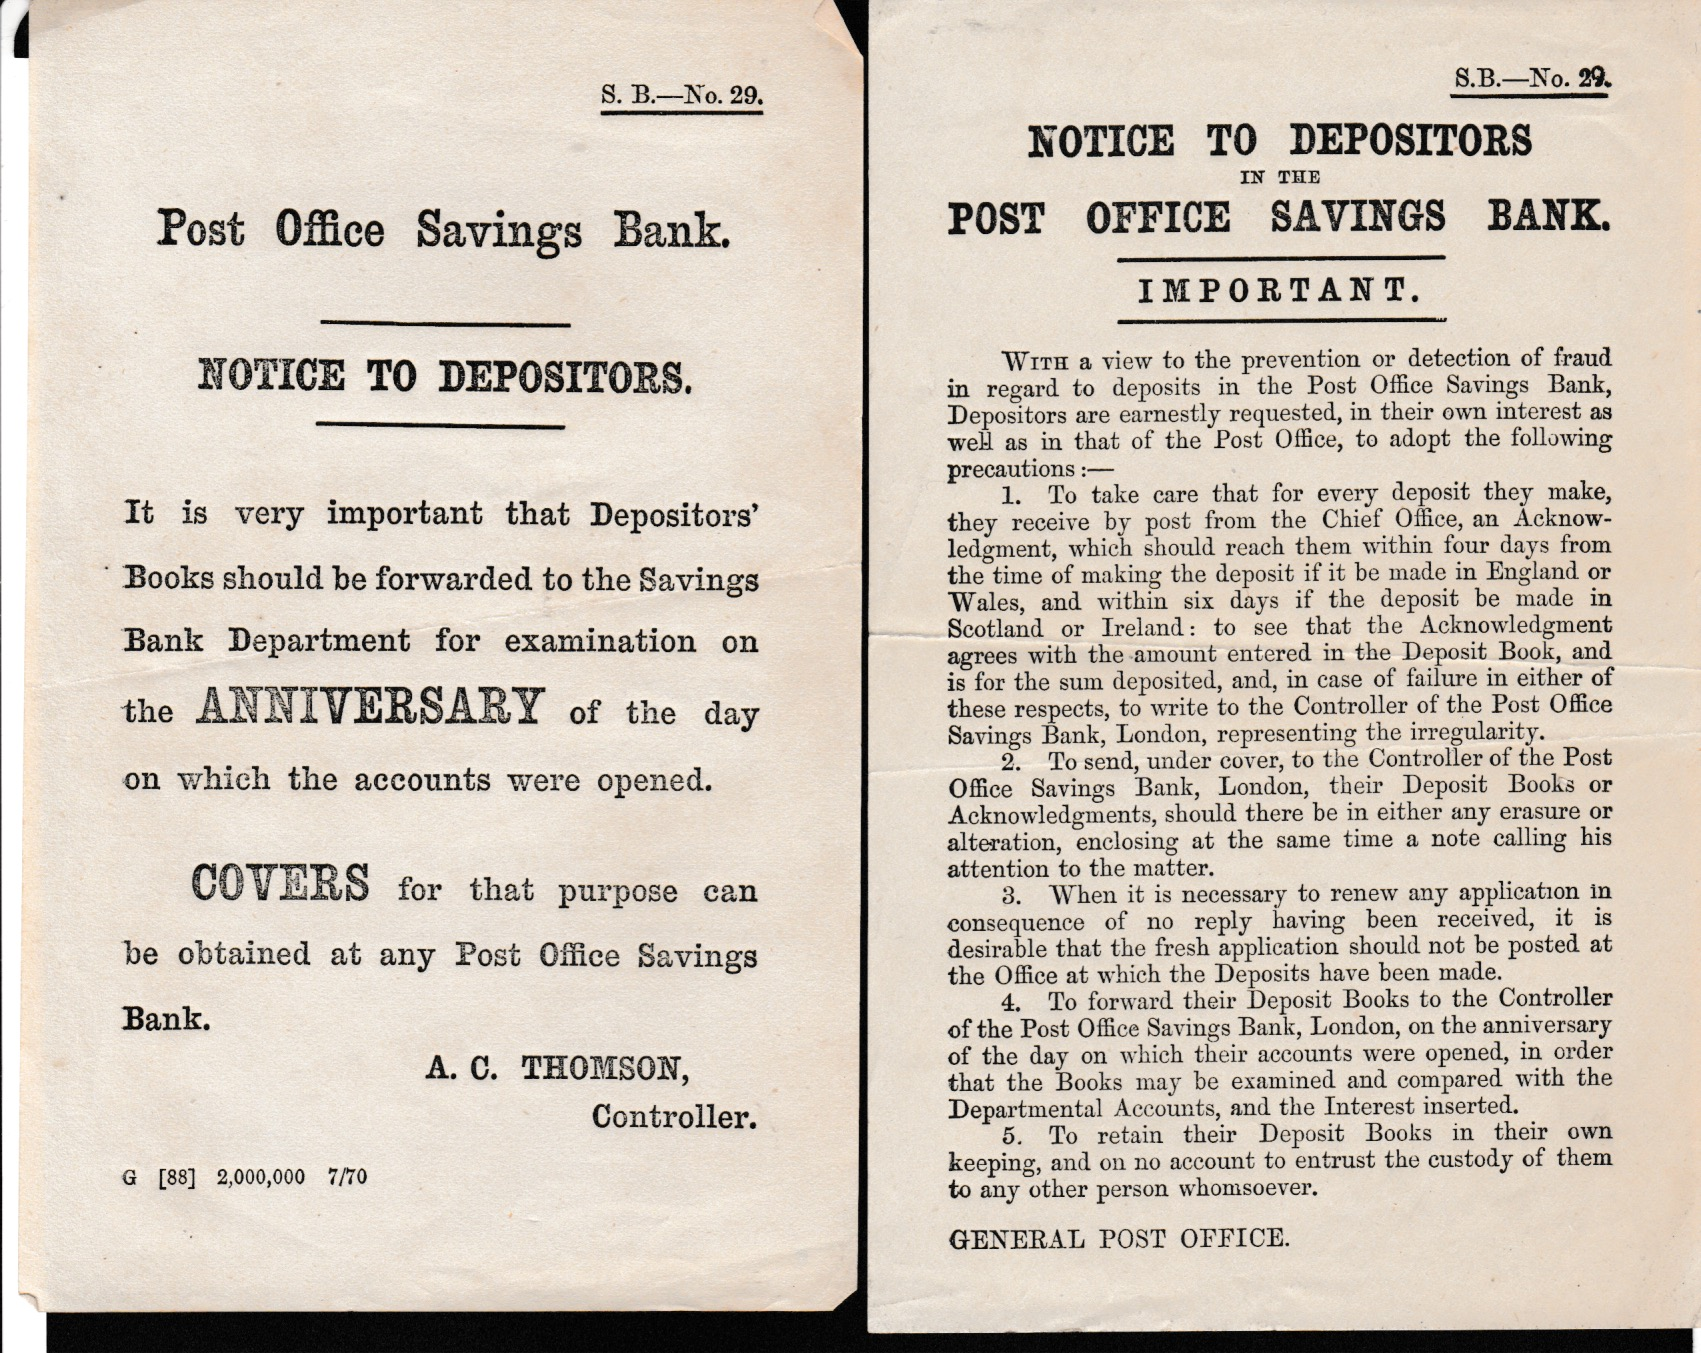 G.B. - Acts & Notices - Image 3 of 6